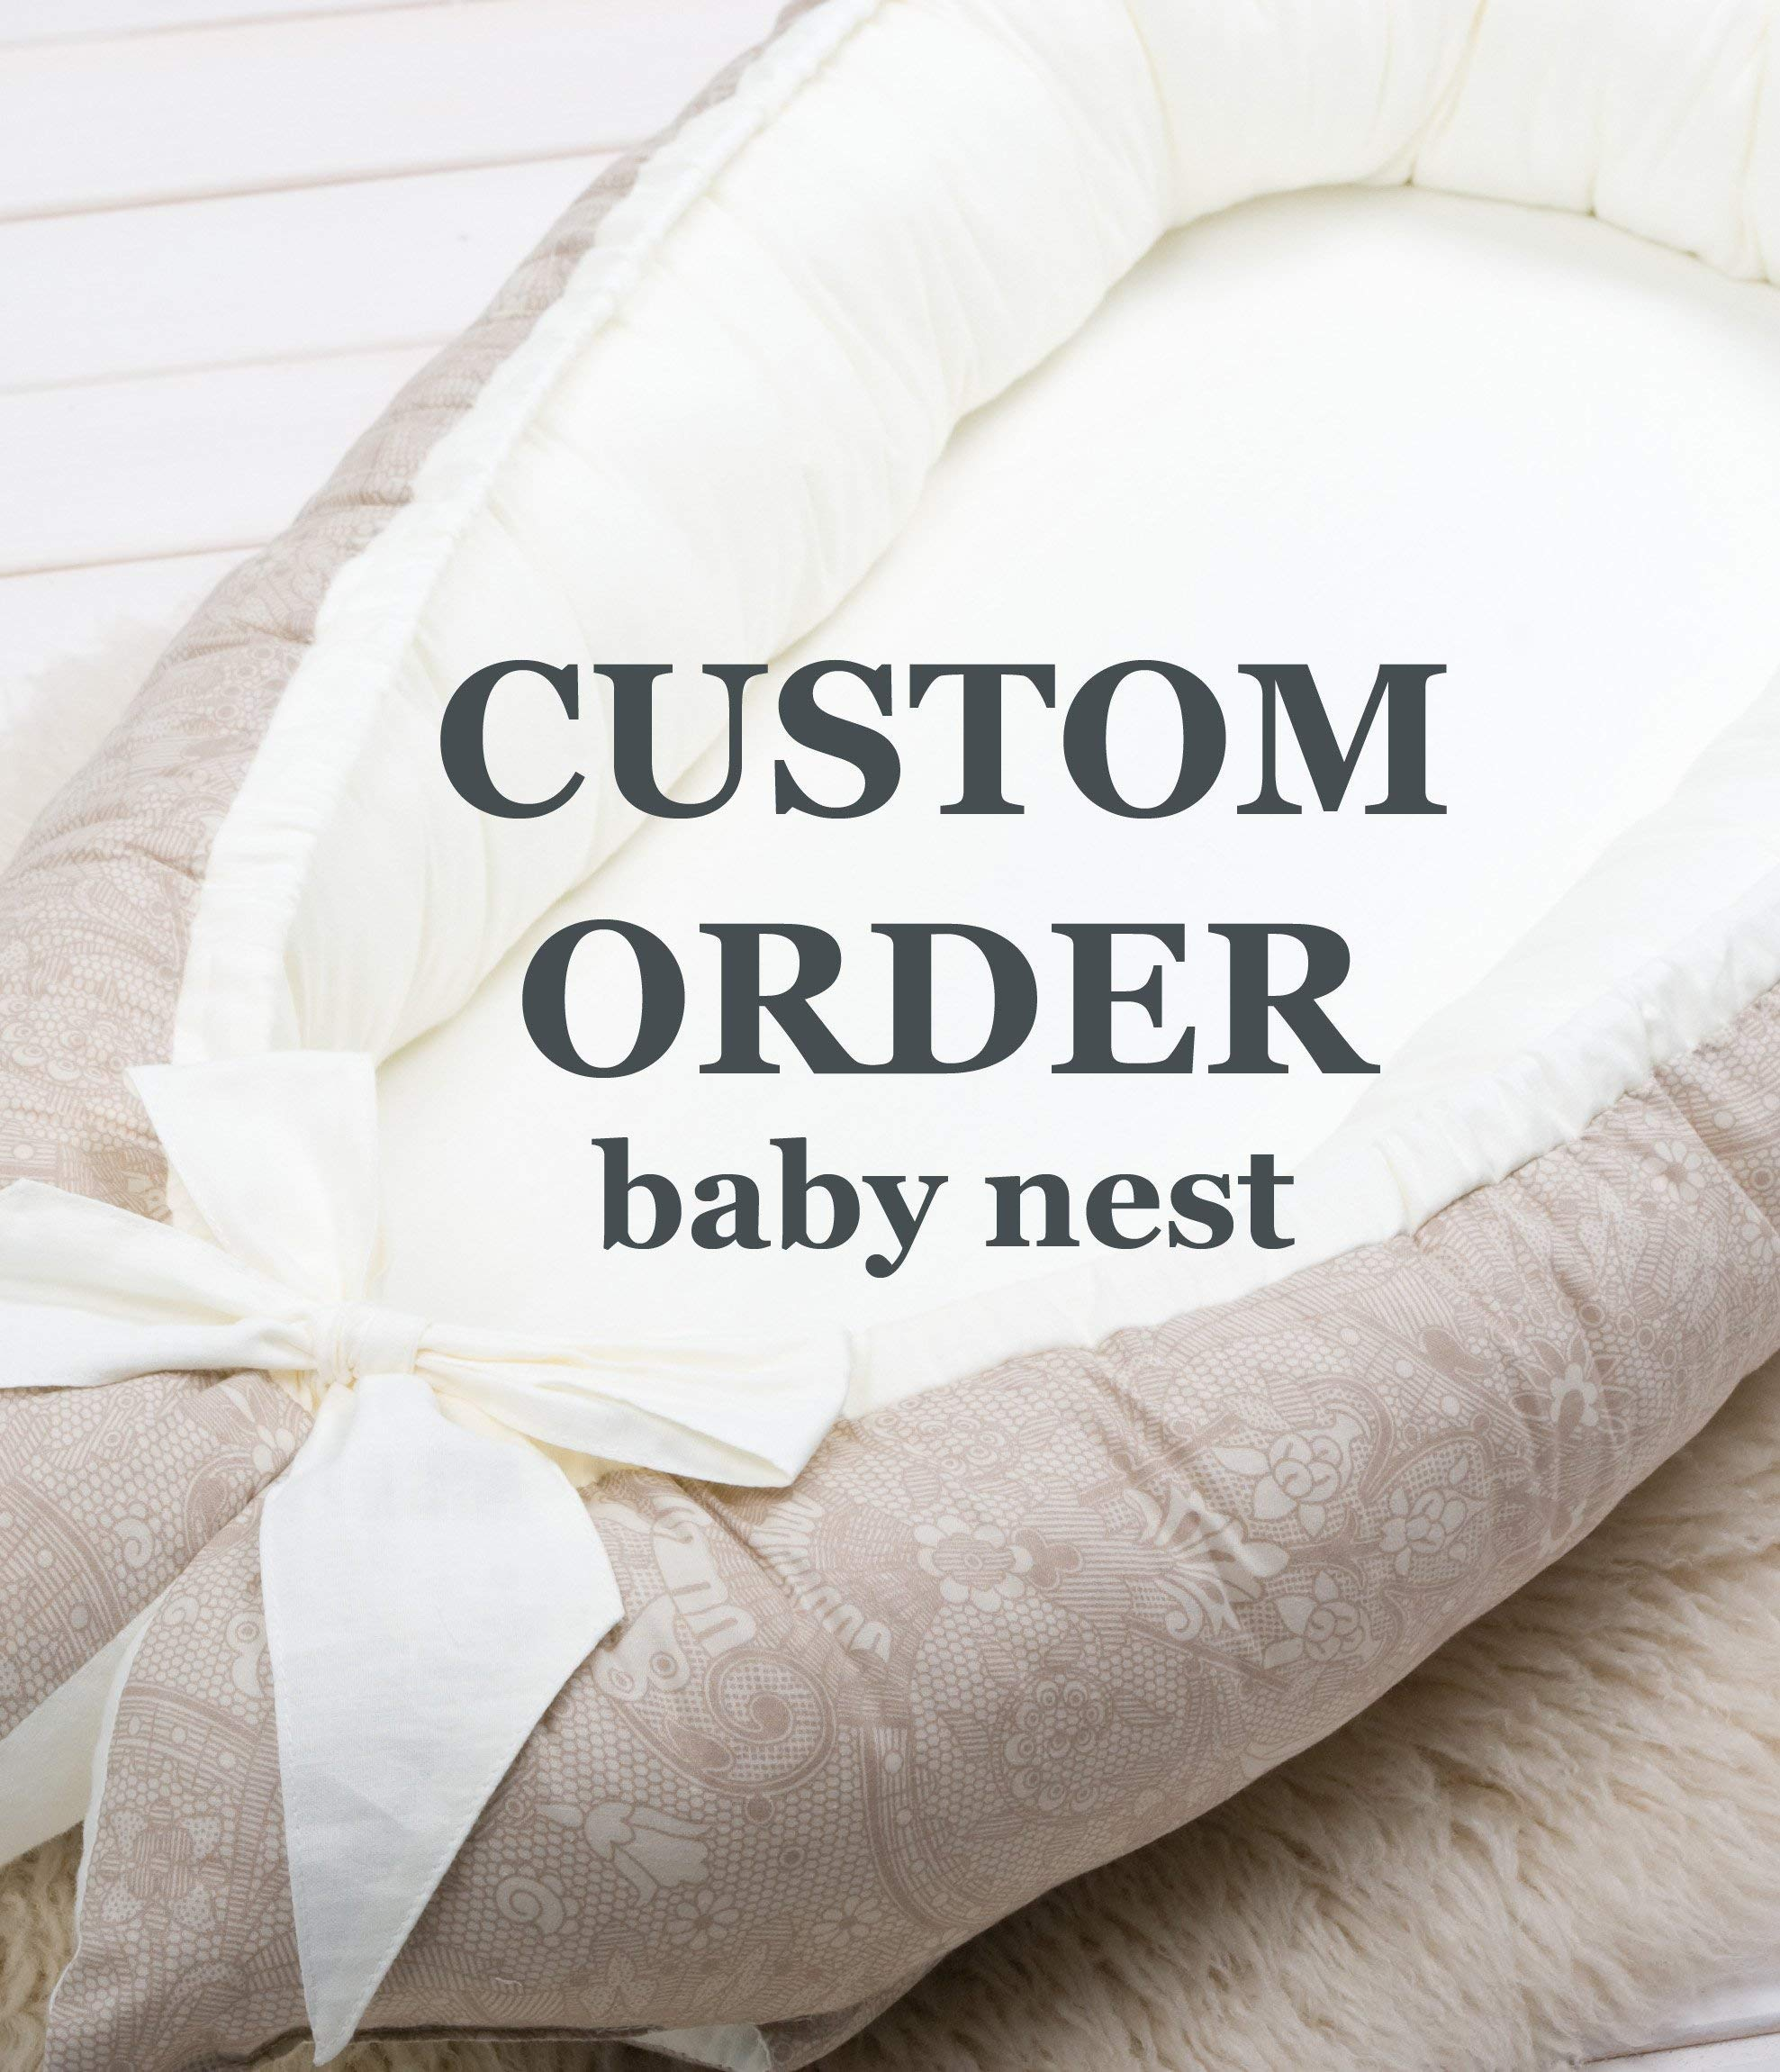 Custom order for the double sided Baby nest bed, portable crib lounger baby bassinet co sleeper babynest babynest bed travel pad pod for newborn